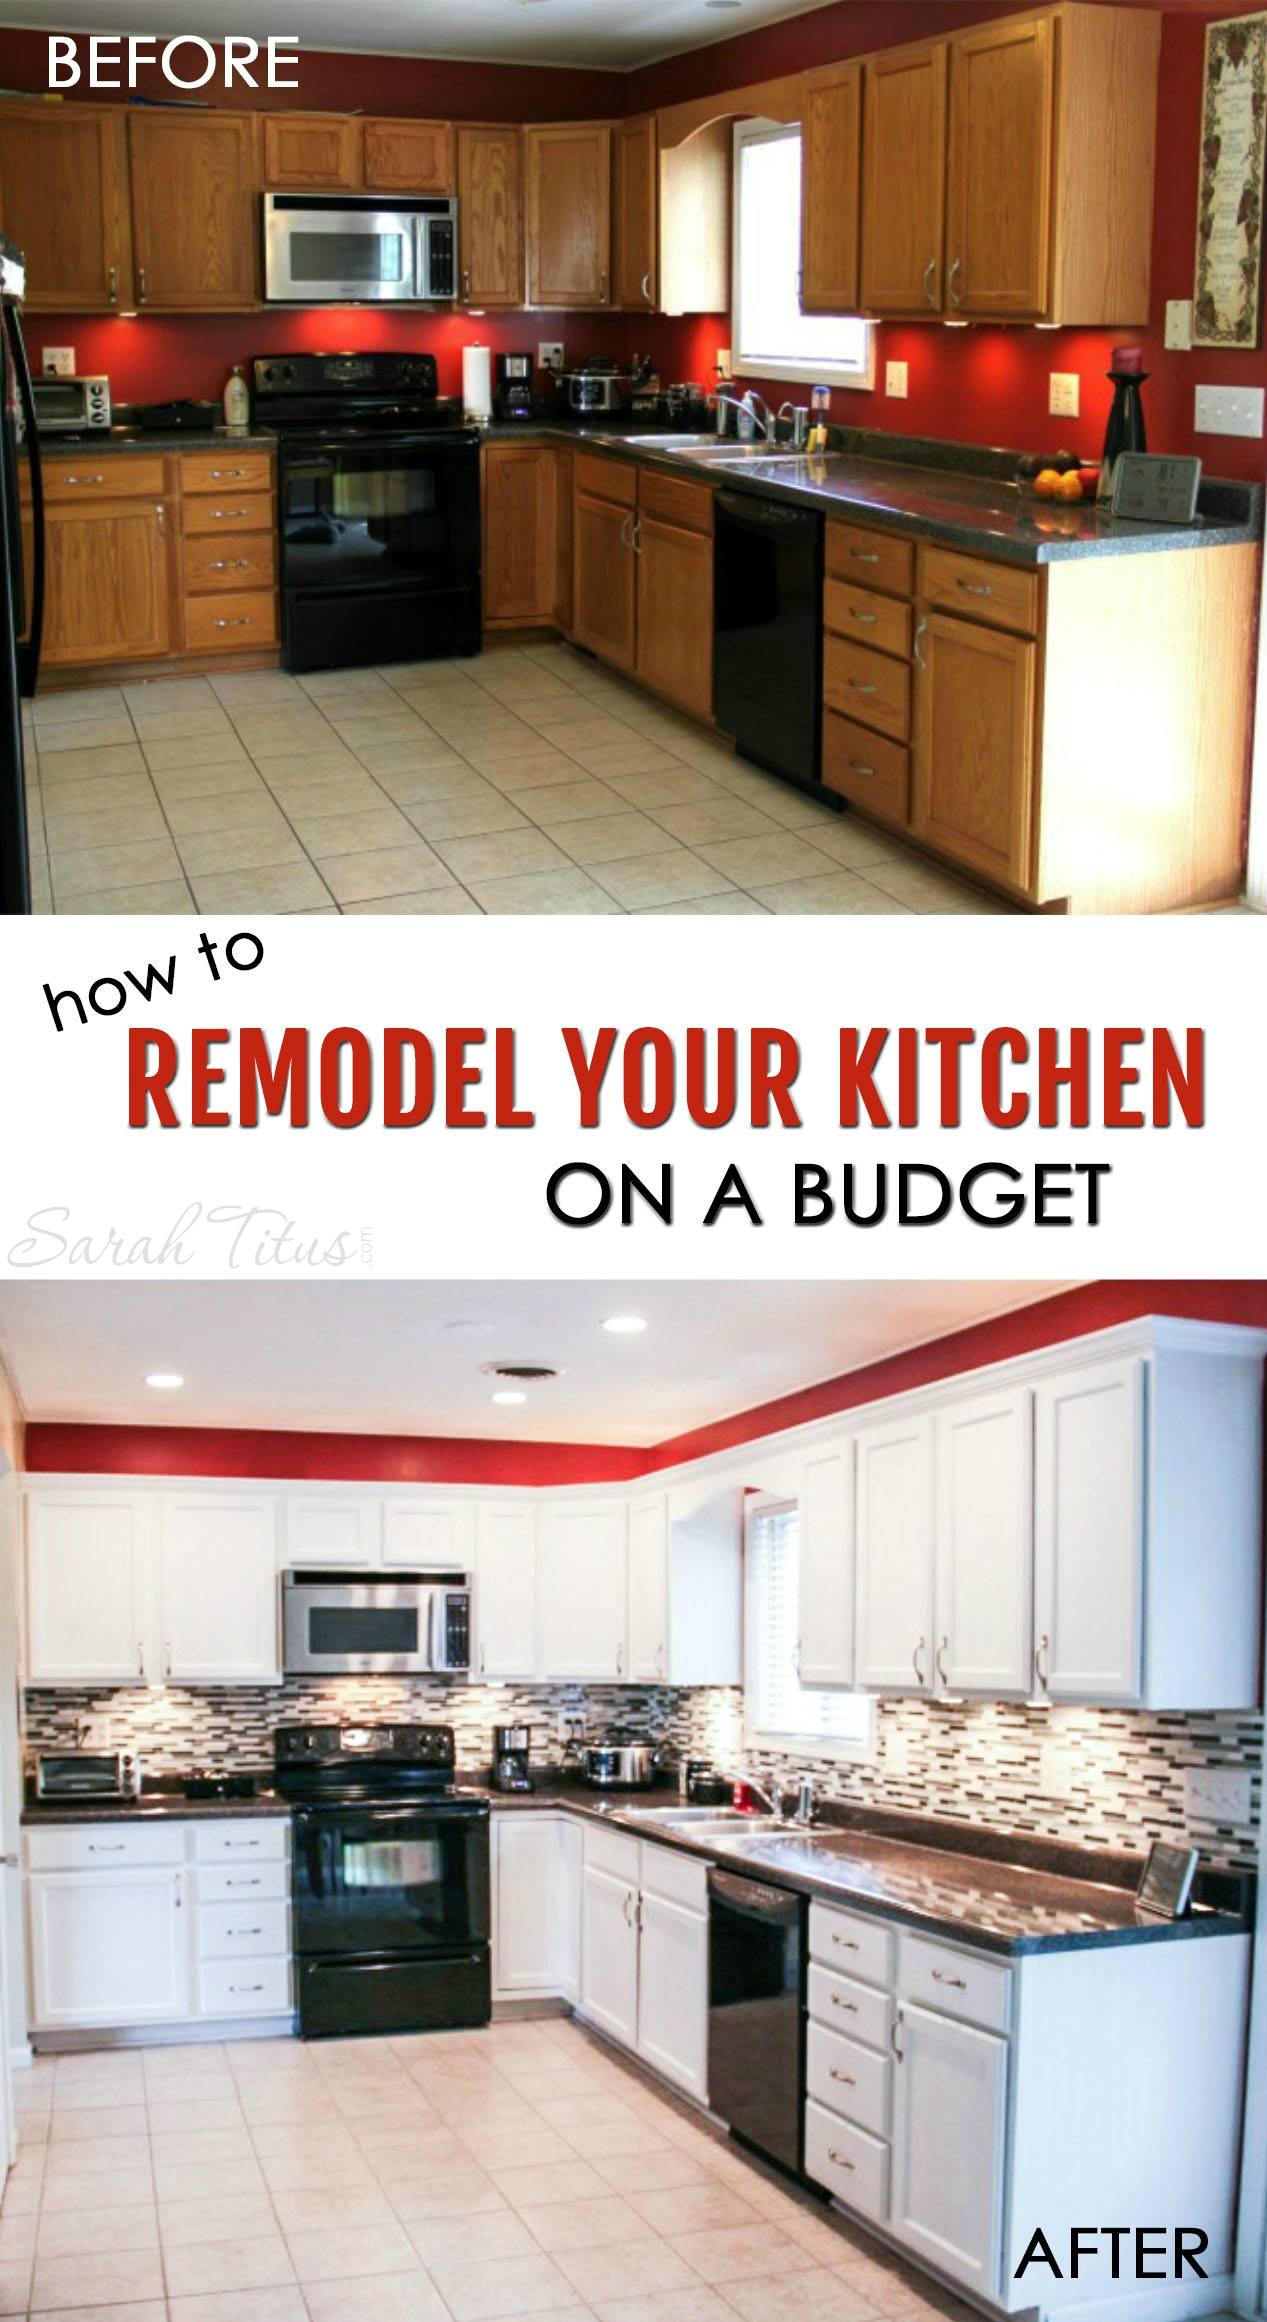 How to remodel your kitchen on a budget sarah titus for Kitchen designs on a budget pictures